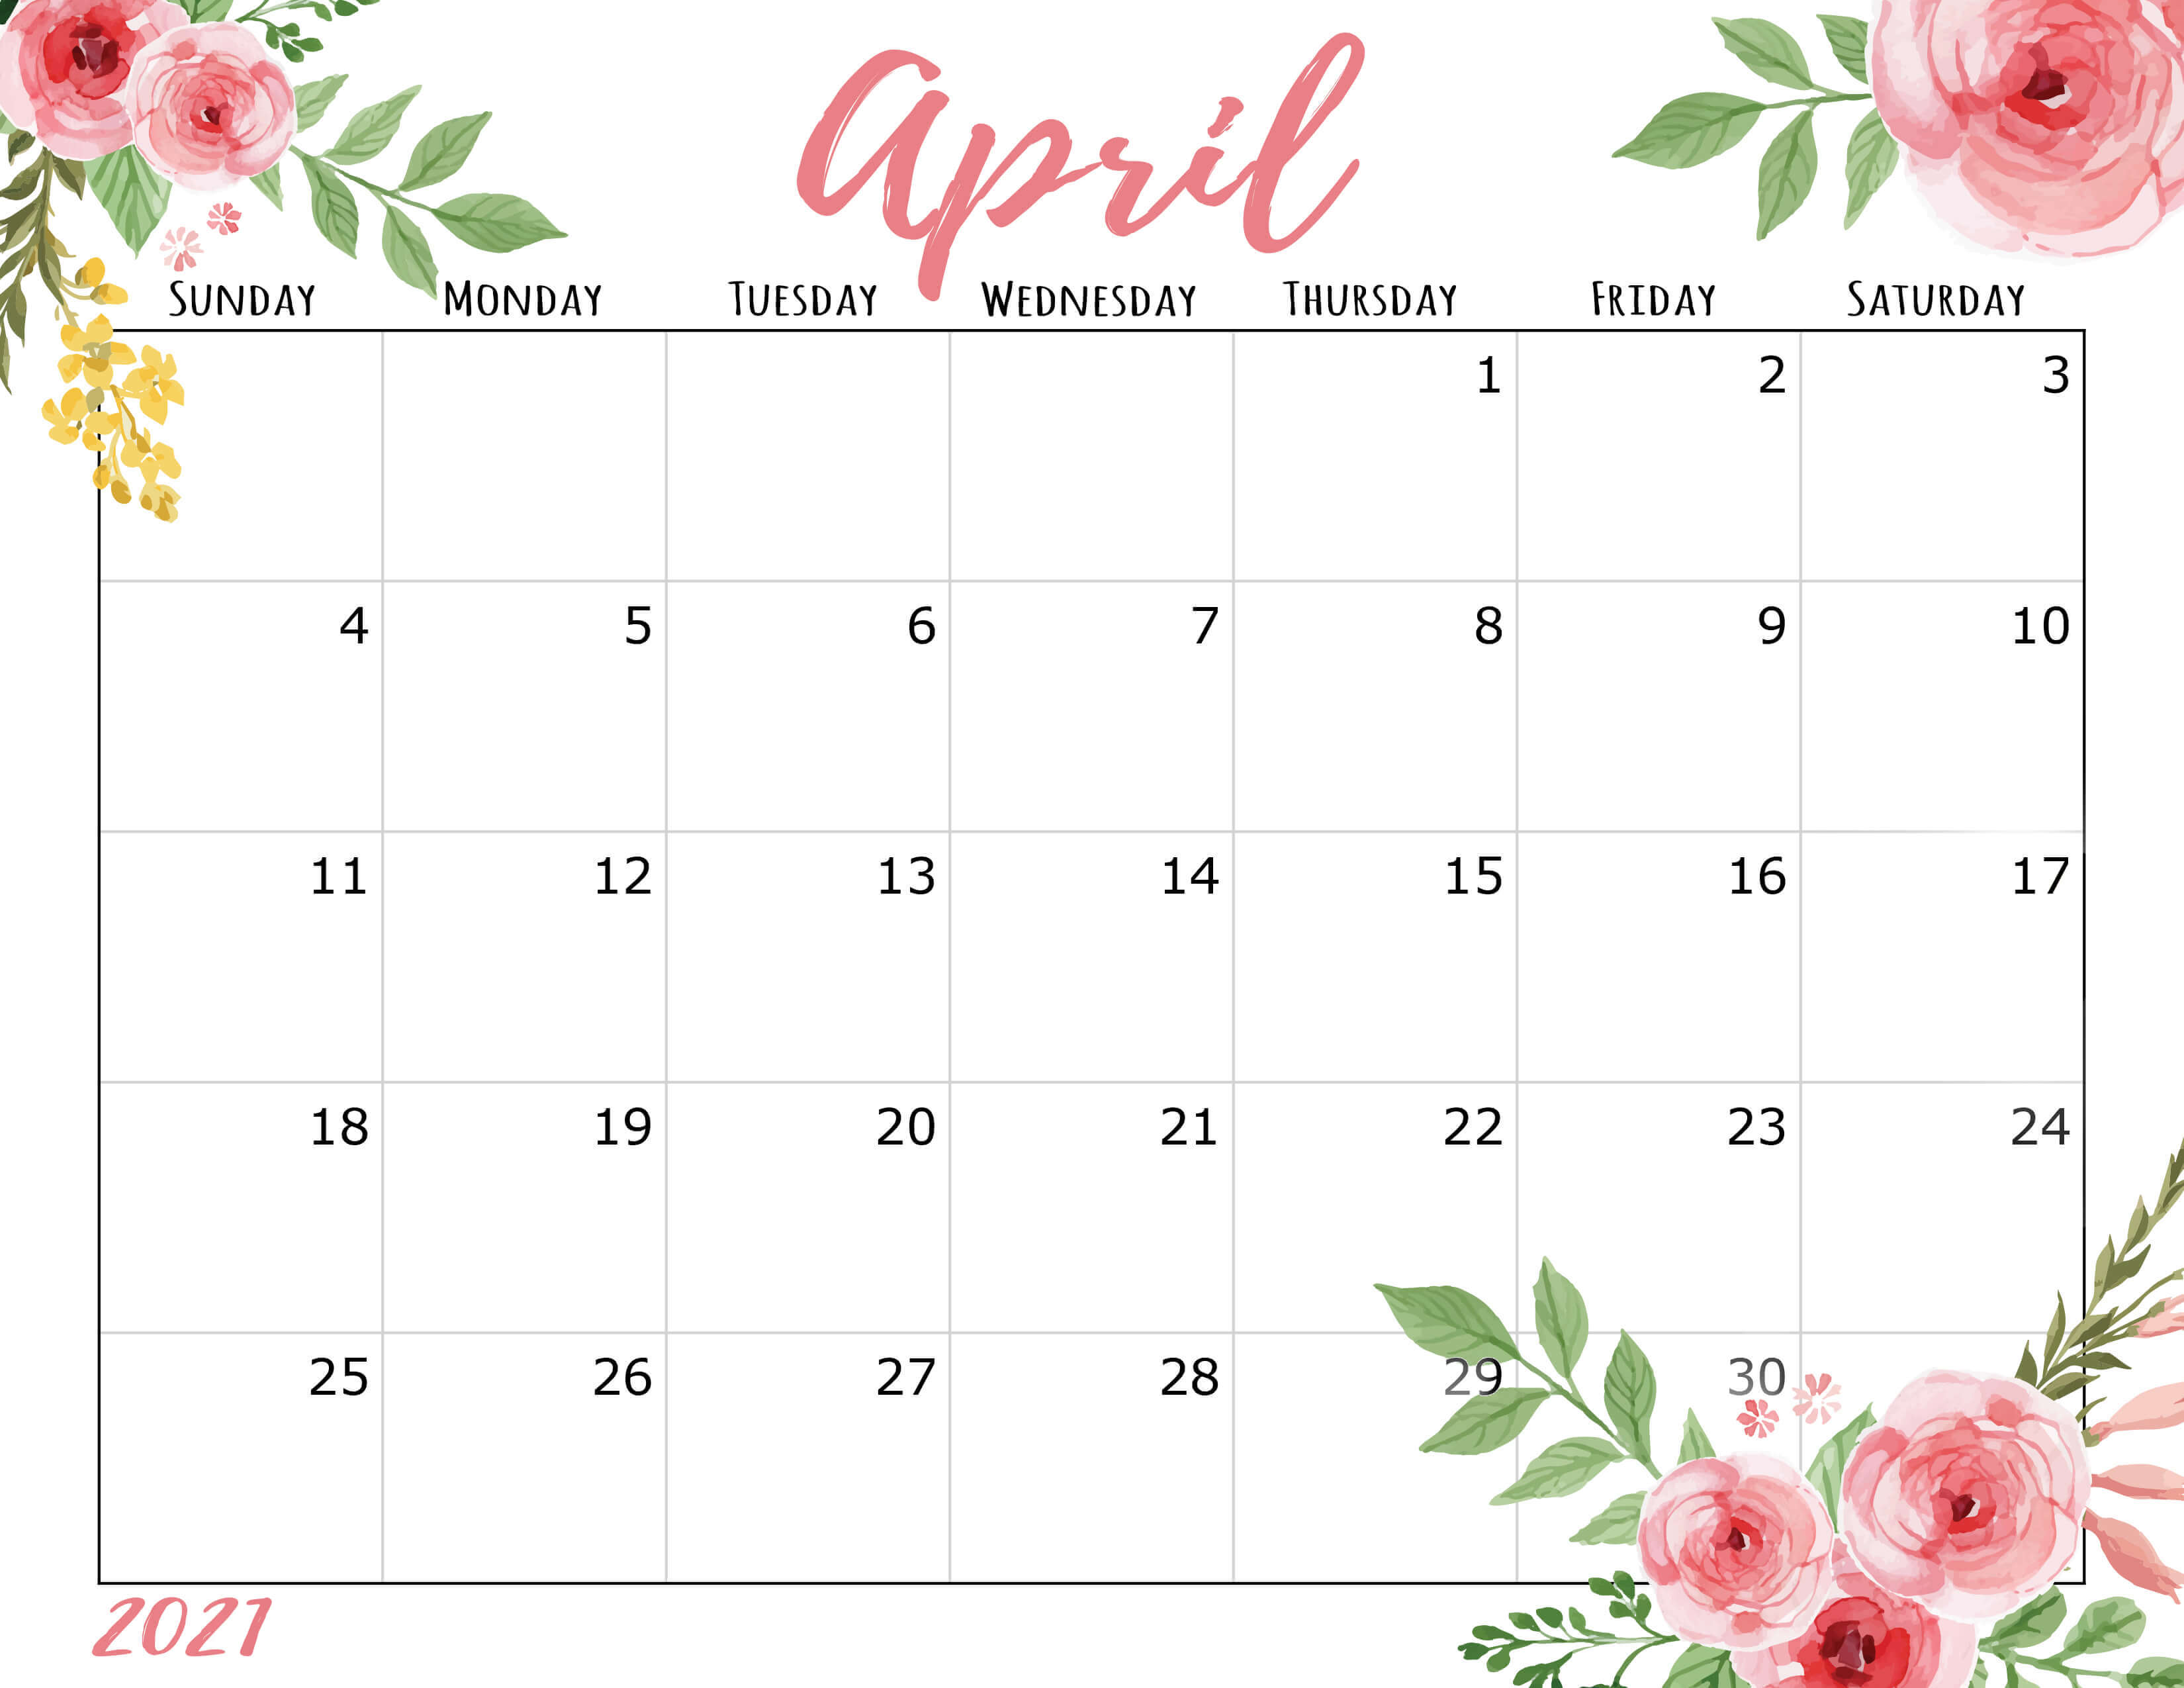 April 2021 Calendar Cute Please Note That Our 2021 Calendar Pages Are For Your Personal Use Only But You May Always Invite Your Friends To Visit Our Website So They May